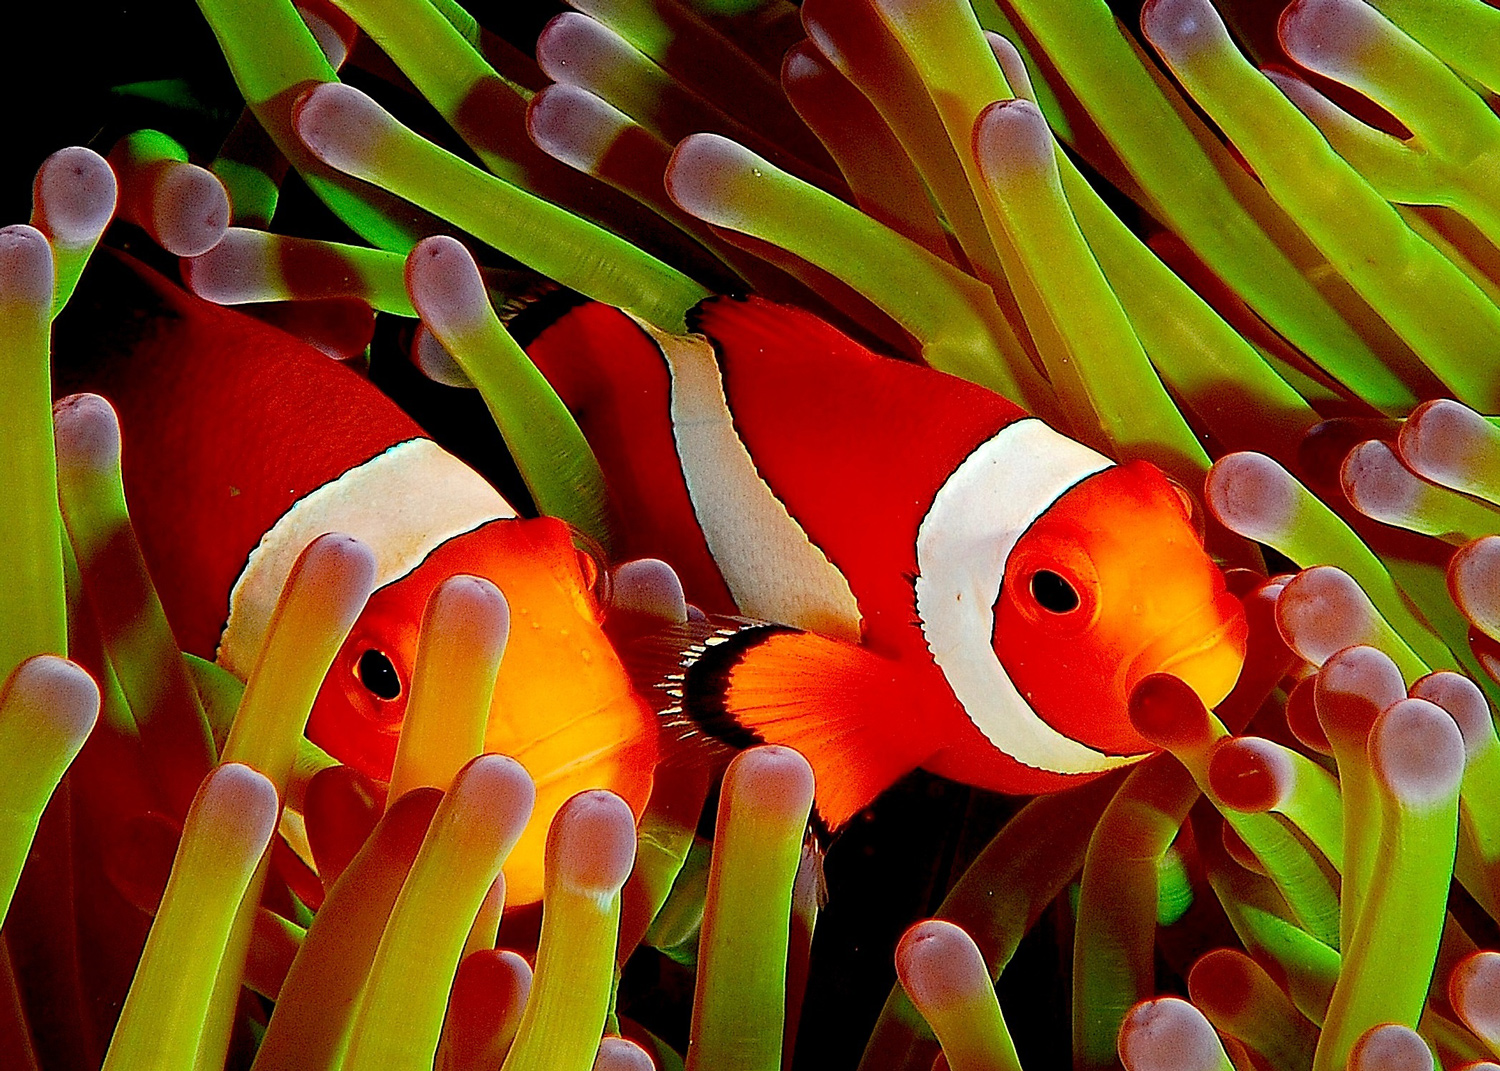 Two bright orange anemonefish poke their heads between anemone tentacles.<div class='credit'><strong>Credit:</strong> Two bright orange anemonefish poke their heads between anemone tentacles.</div>